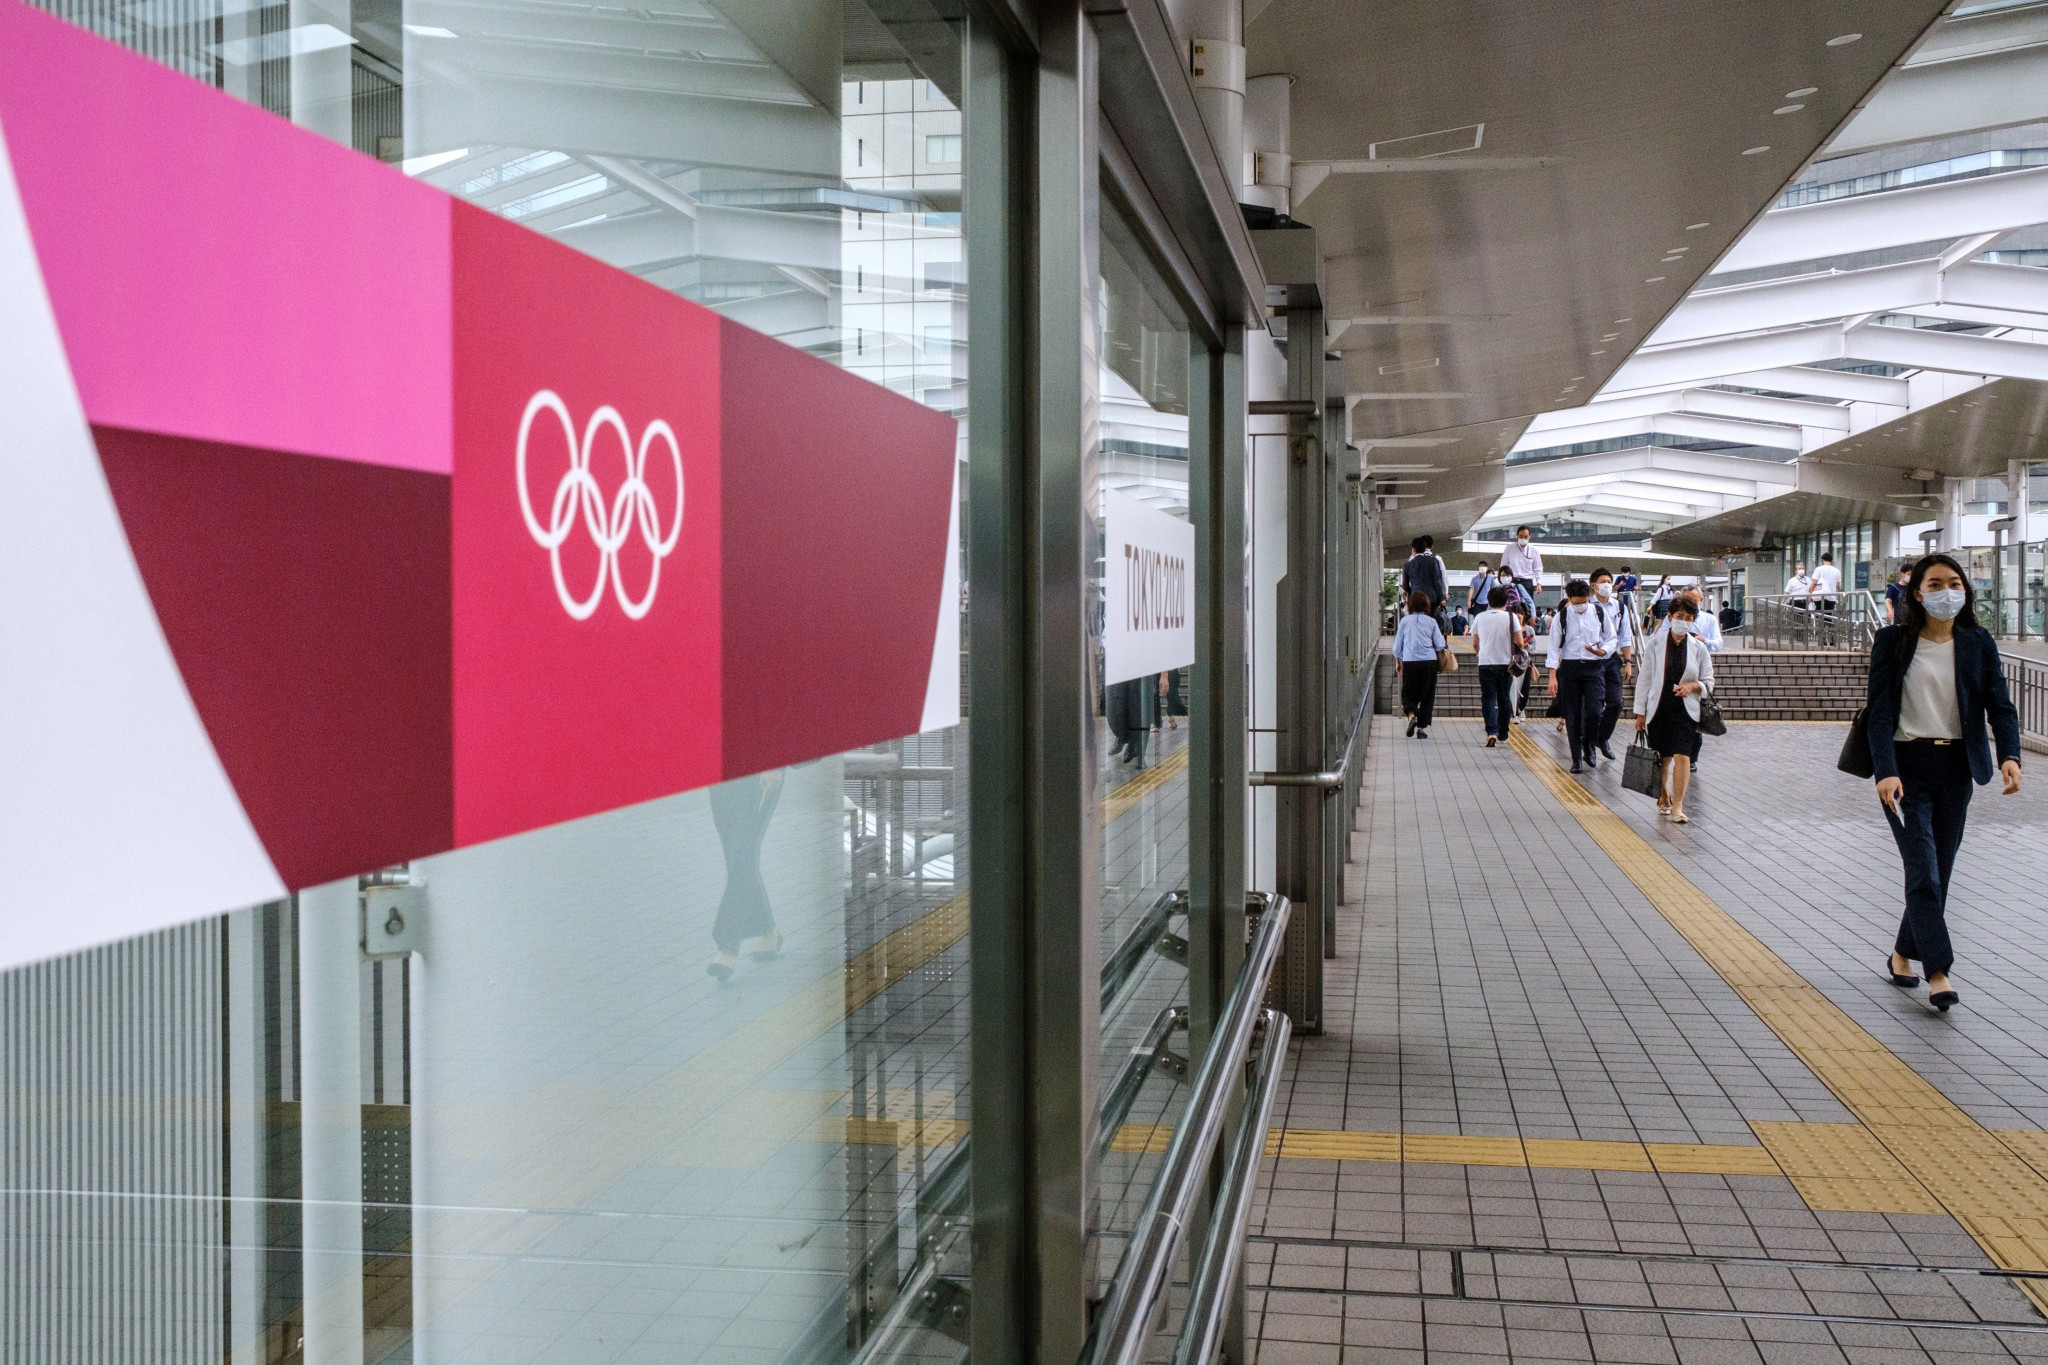 Coronavirus countermeasures are viewed as key for the Olympic Games to take place in Tokyo next year ©Getty Images